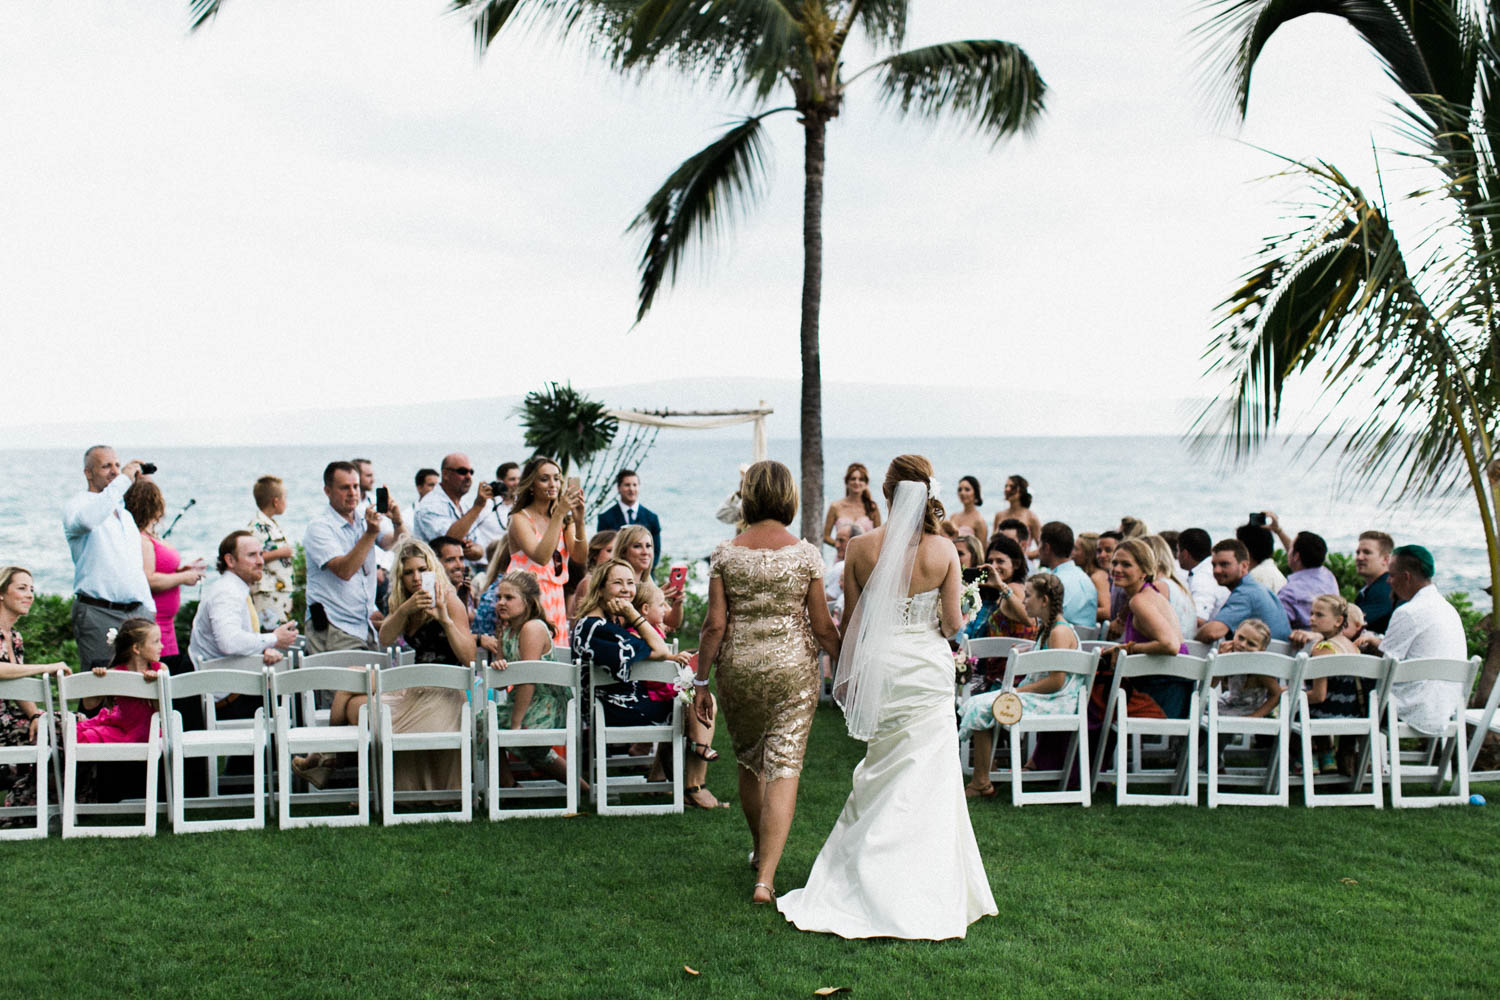 Private luxury wedding venues in maui the perfect for Maui wedding locations